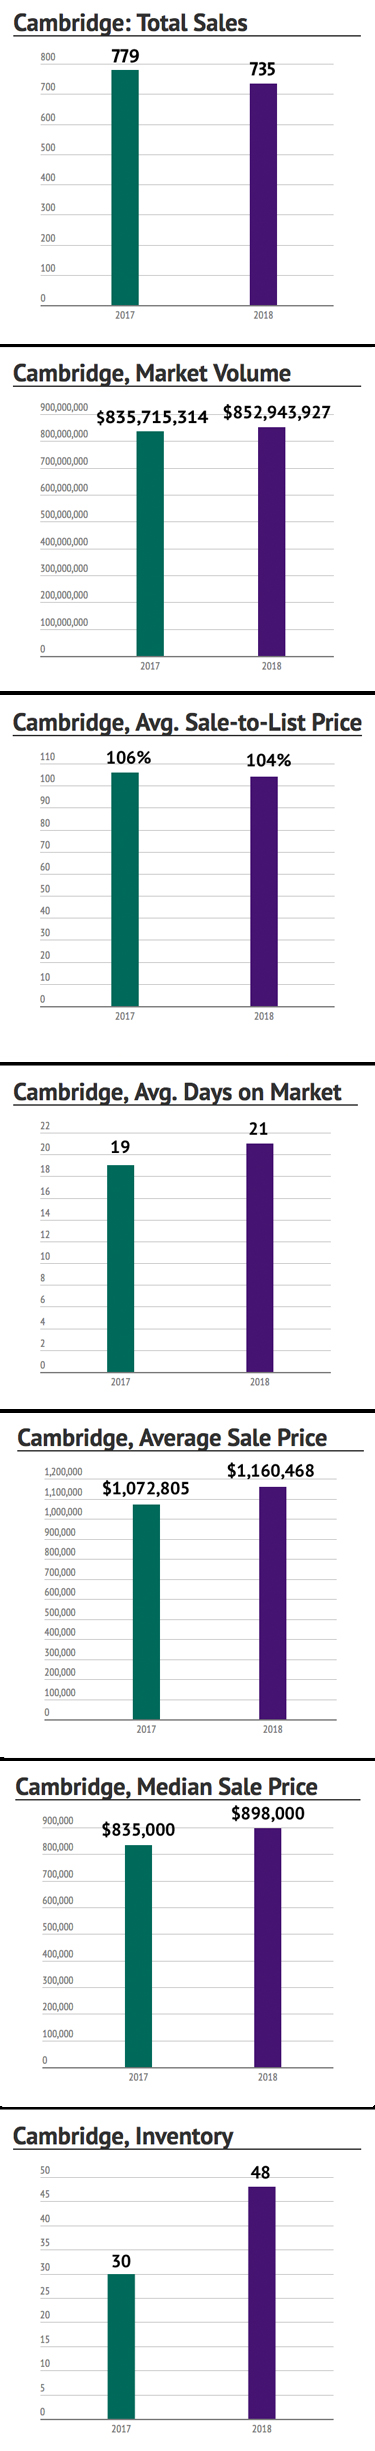 Cambridge: 2018 Market